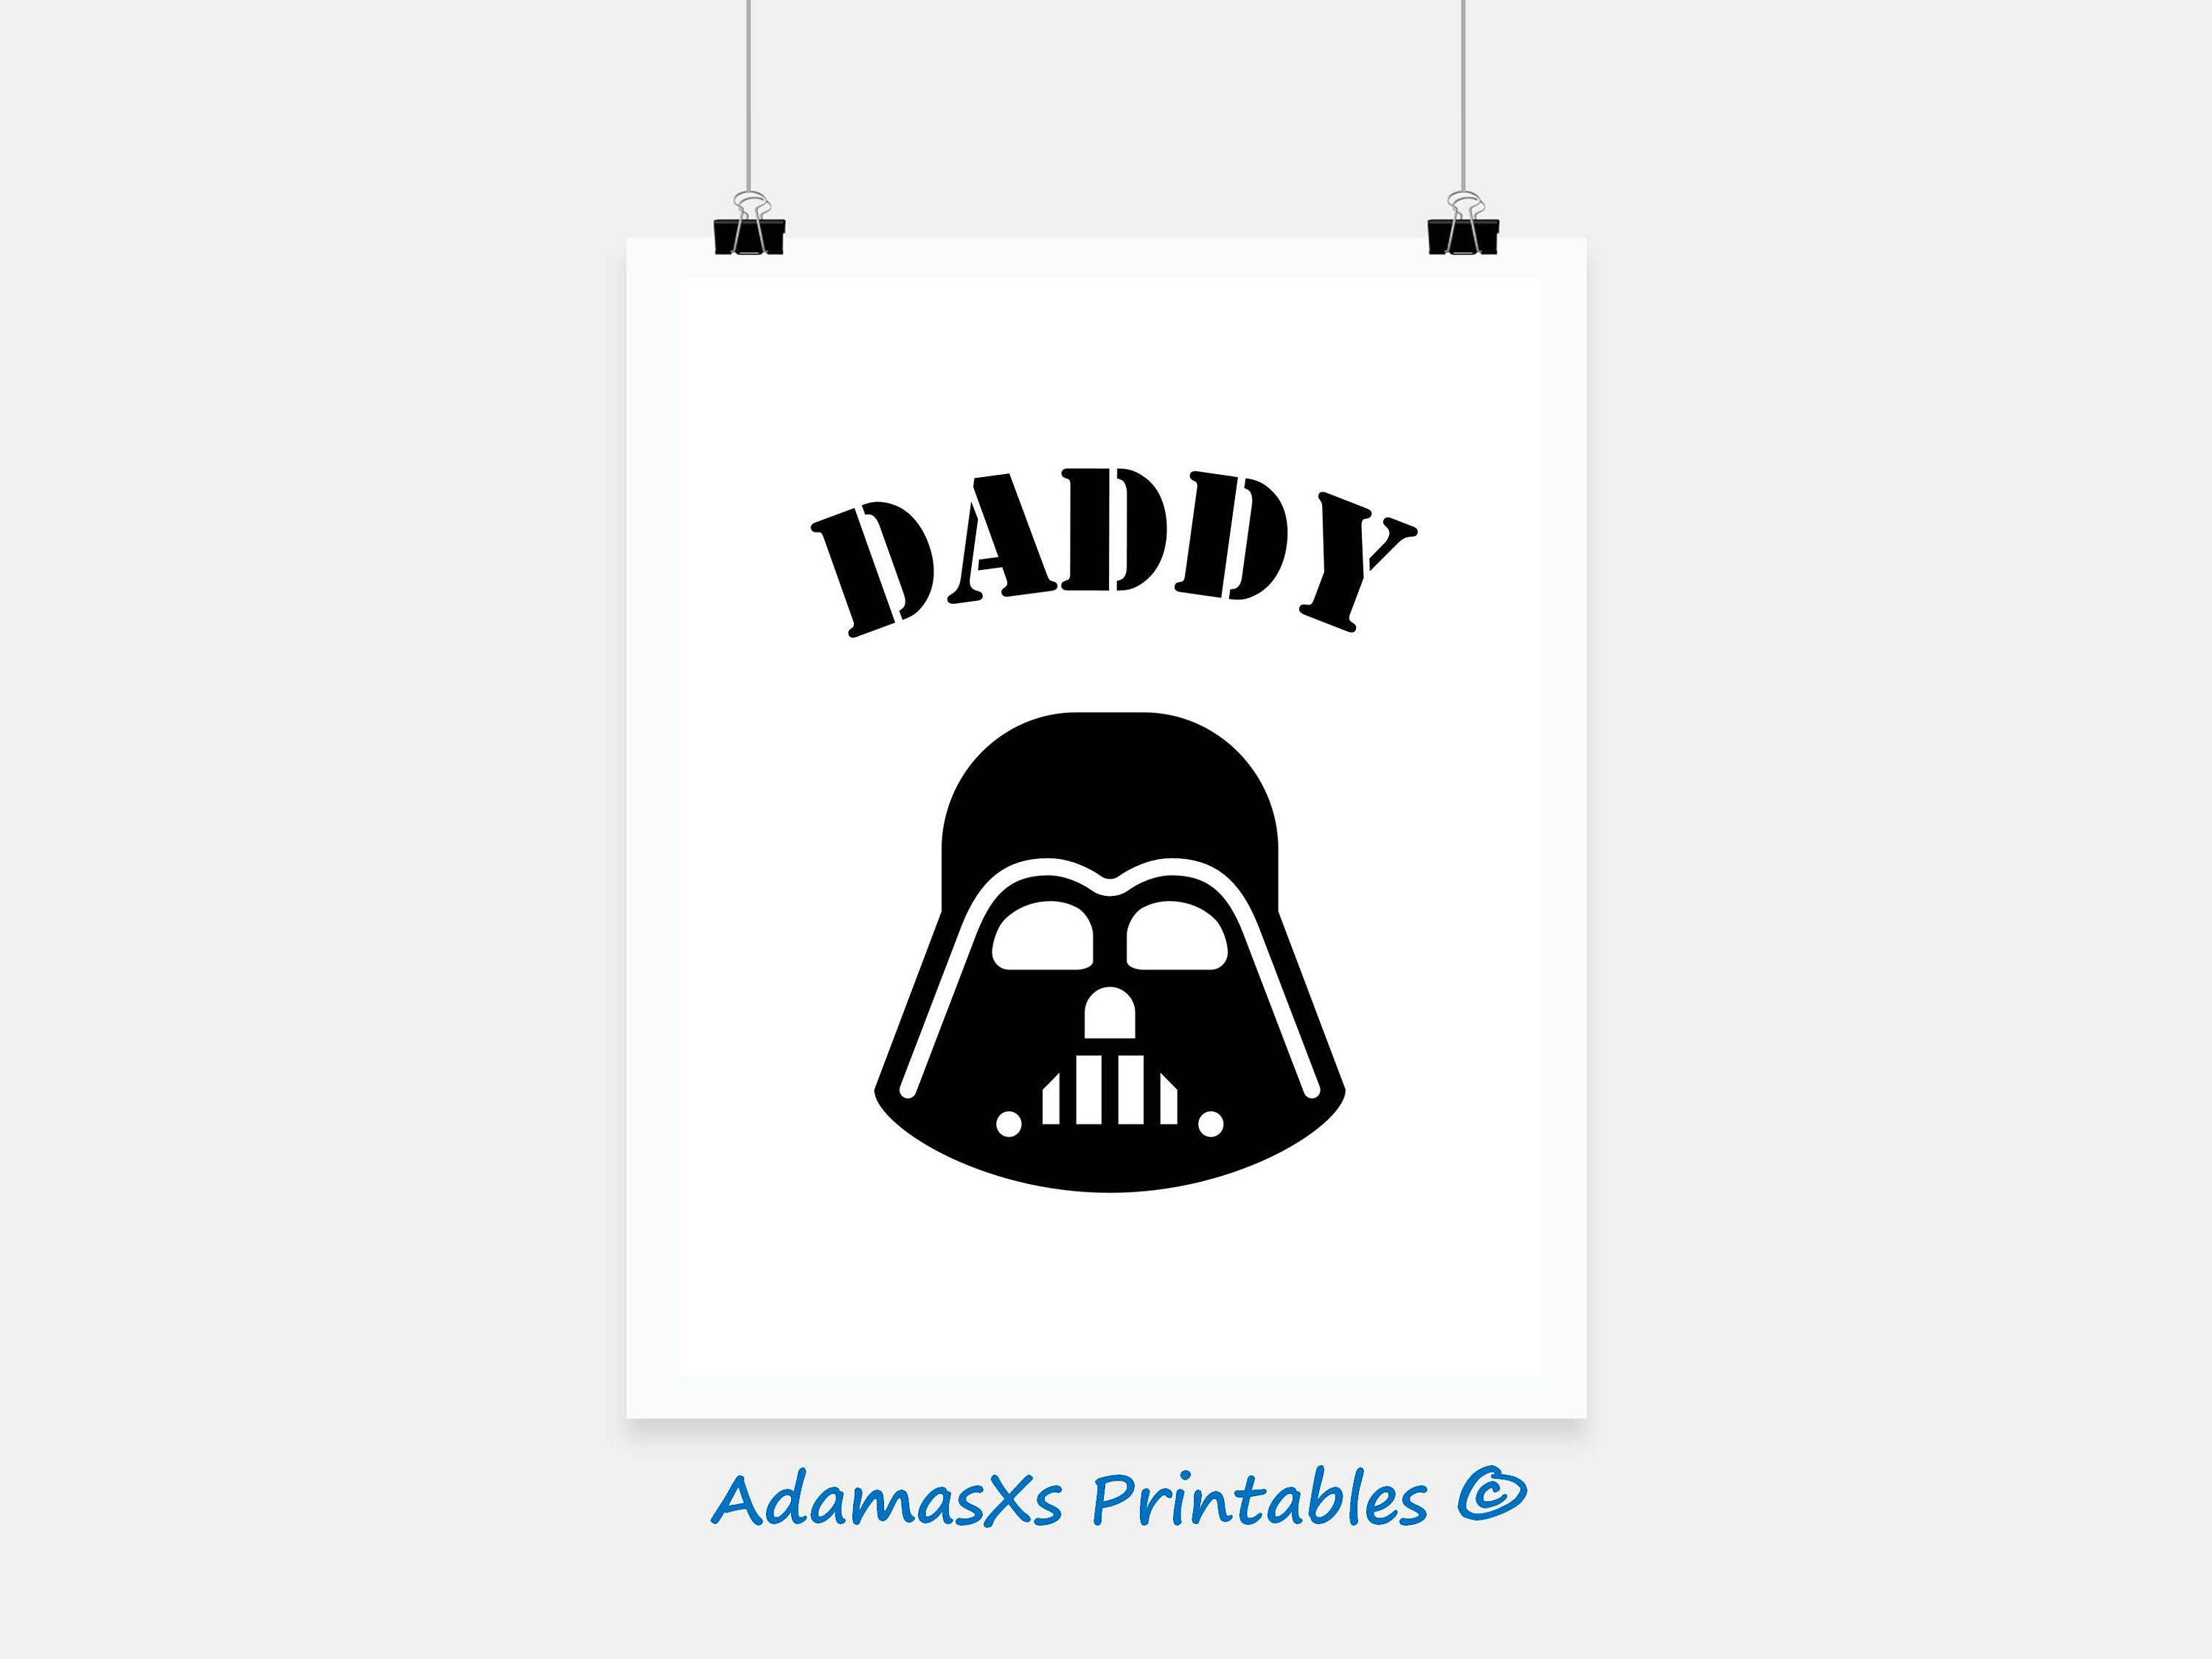 picture regarding Darth Vader Printable referred to as Star wars printable, Darth vader printable, Black and white prints, father presents, Presents for geeks, Reduced star wars nursery, Star wars poster